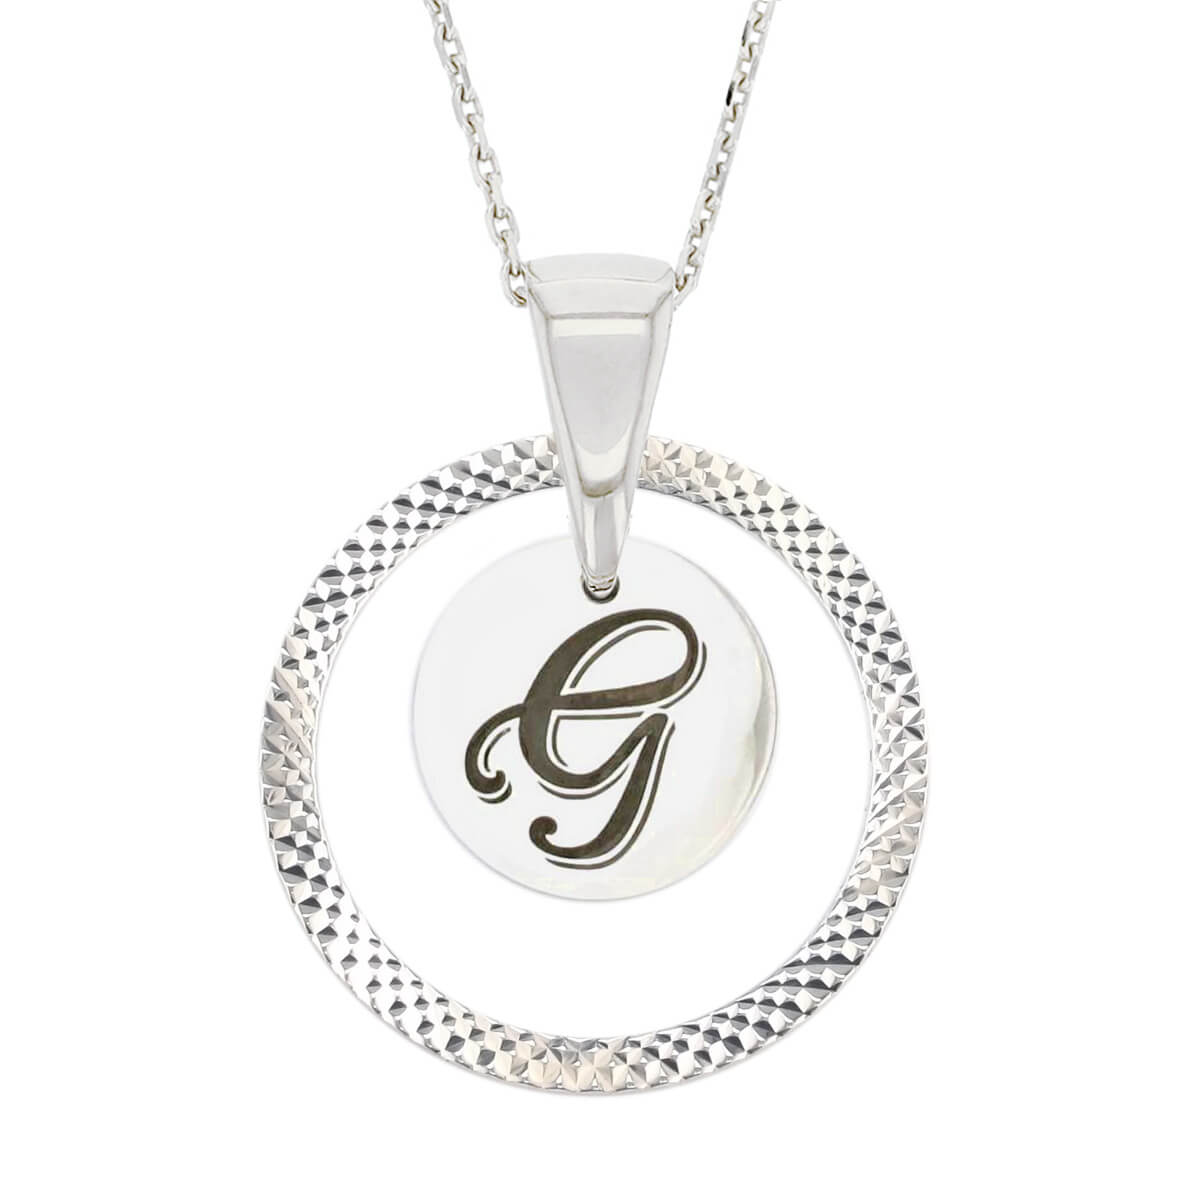 Faller Kryptos necklace, silver jewellery, message pendant, personalised engraving, make your own, jewellery, gift, celebration, symbol, claddagh, love, loyalty, friendship, silver necklace, birthday gifts, Christmas gifts, Mother's day gifts, initial jewellery